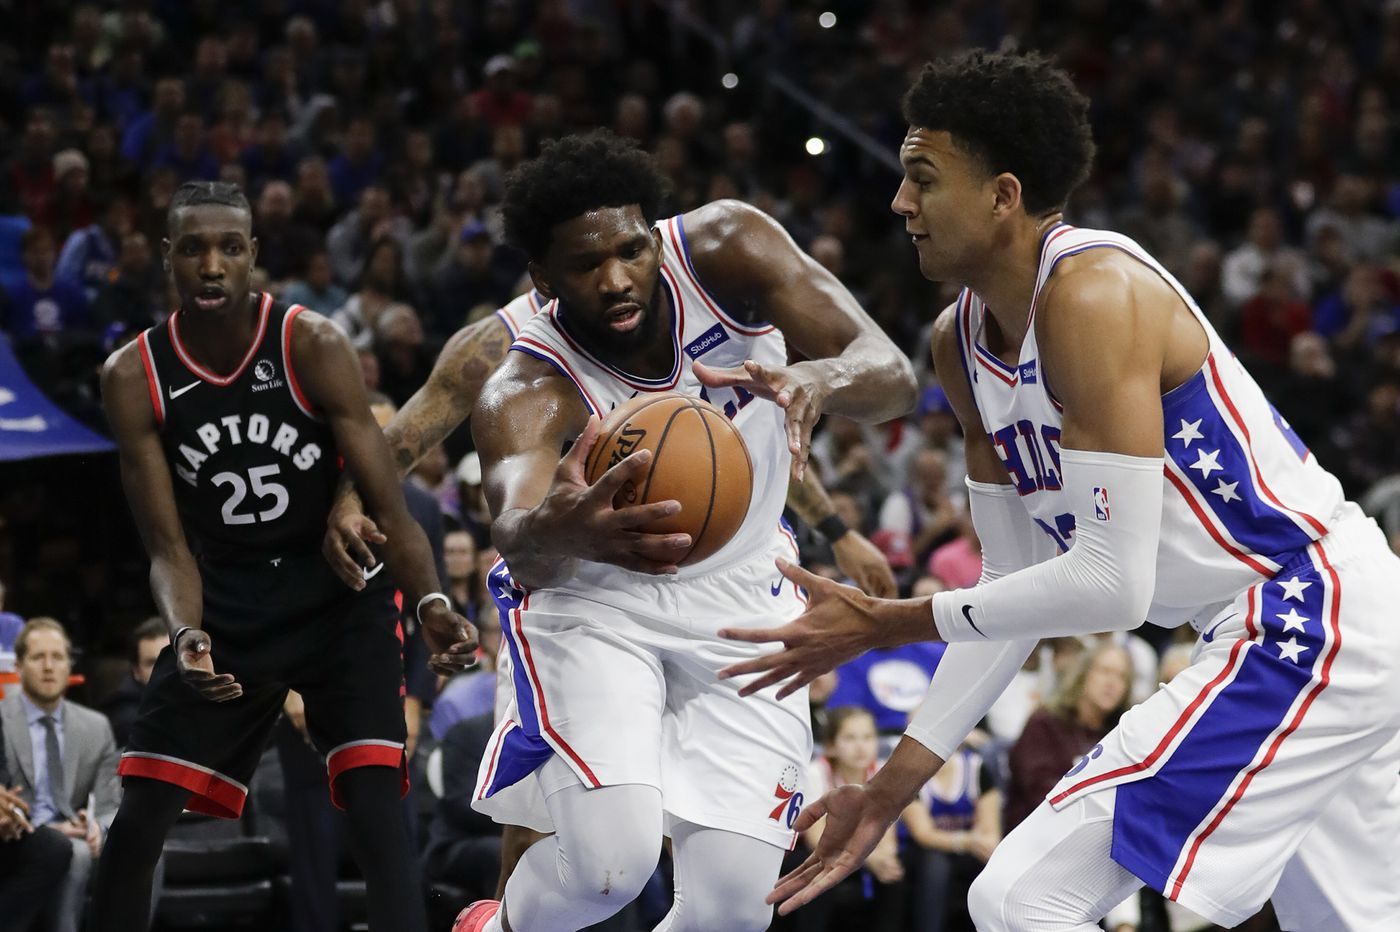 Sixers-Raptors best/worst: Matisse Thybulle's career night; late blunders and poor execution